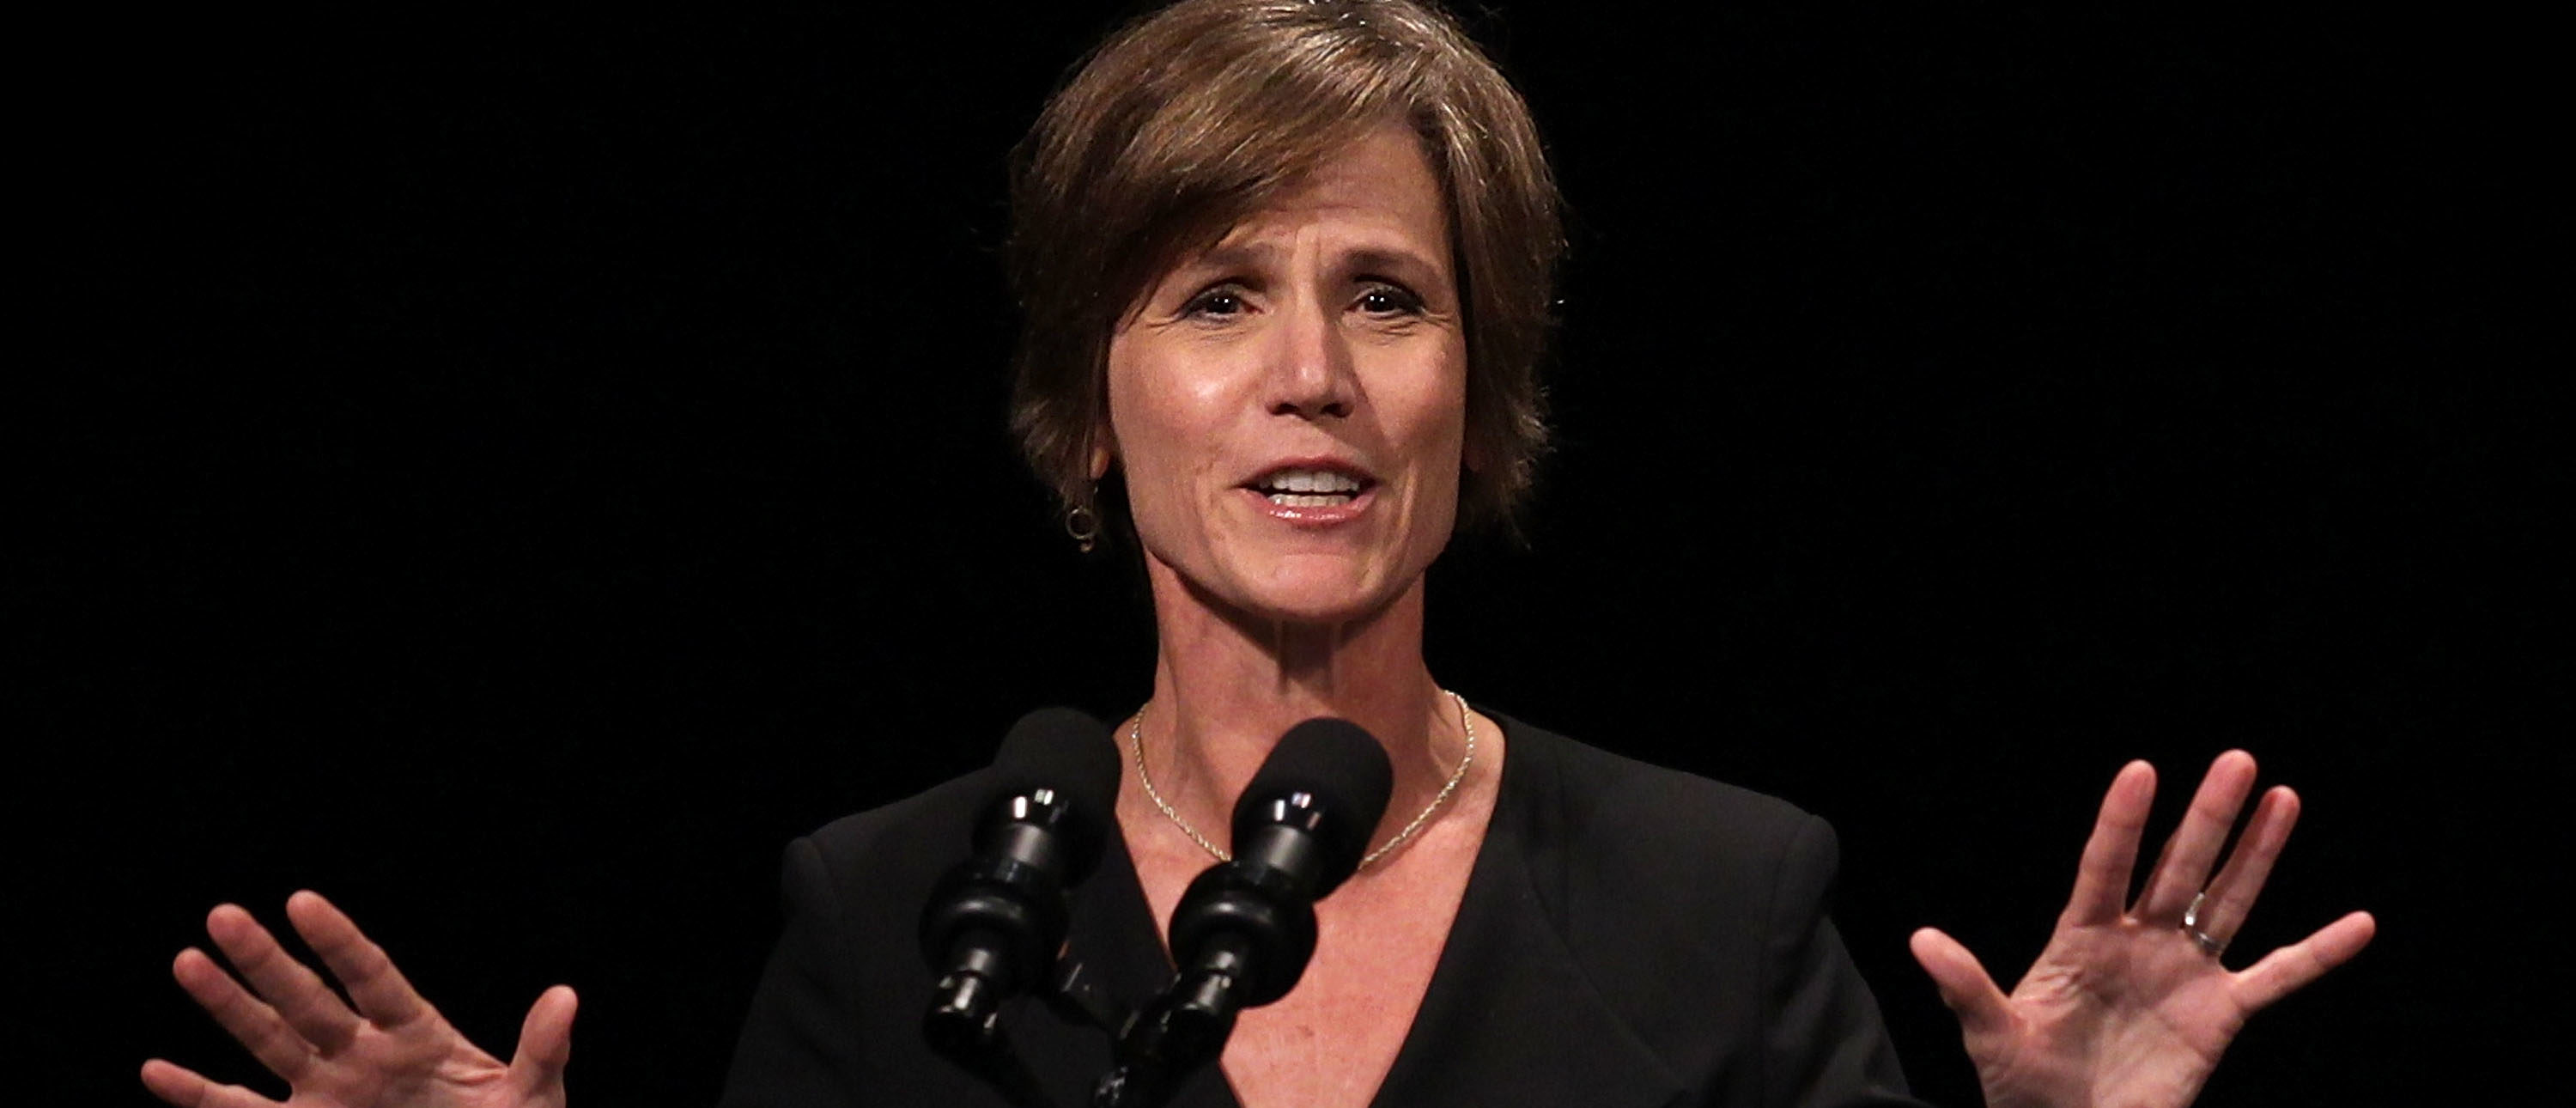 WASHINGTON, DC - JUNE 17: U.S. Deputy Attorney General Sally Yates speaks during a formal investiture ceremony for Attorney General Loretta Lynch June 17, 2015 at the Warner Theatre in Washington, DC. Lynch was officially sworn in by Vice President Joe Biden as the 83rd Attorney General of the United States on April 27, 2015. She is the first African-American woman to serve in the position. (Photo by Alex Wong/Getty Images)